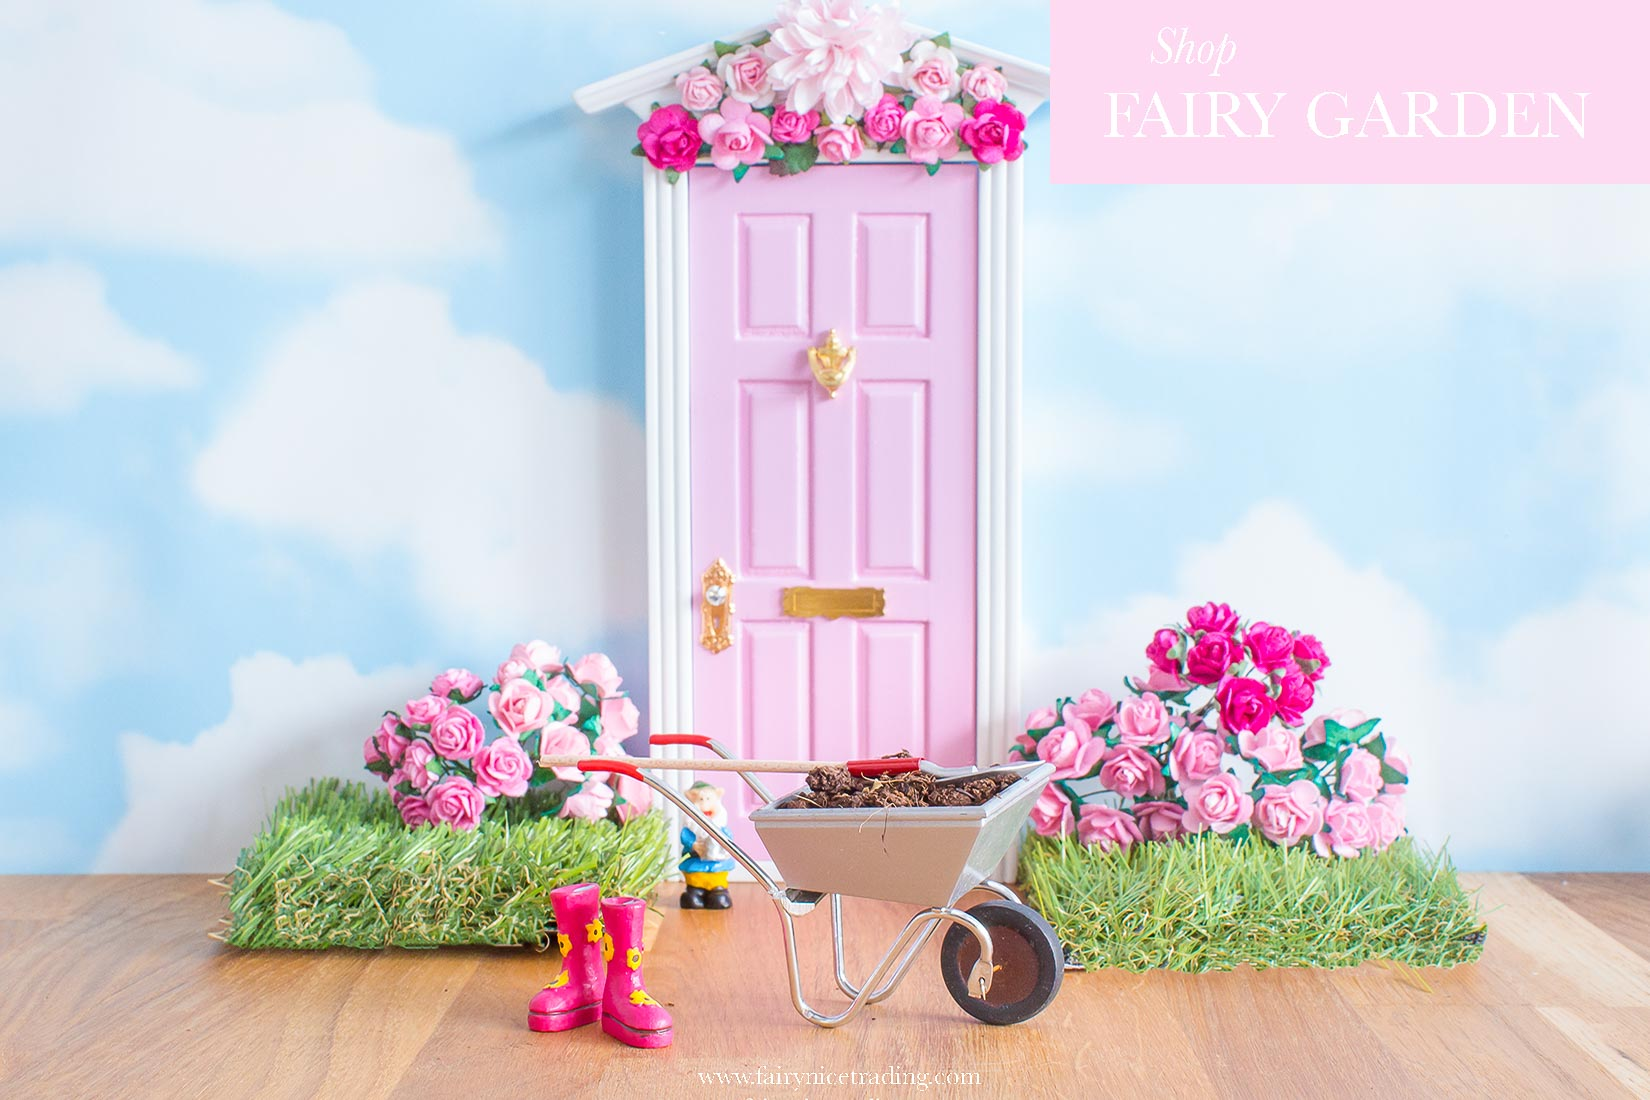 fairy garden accessories uk